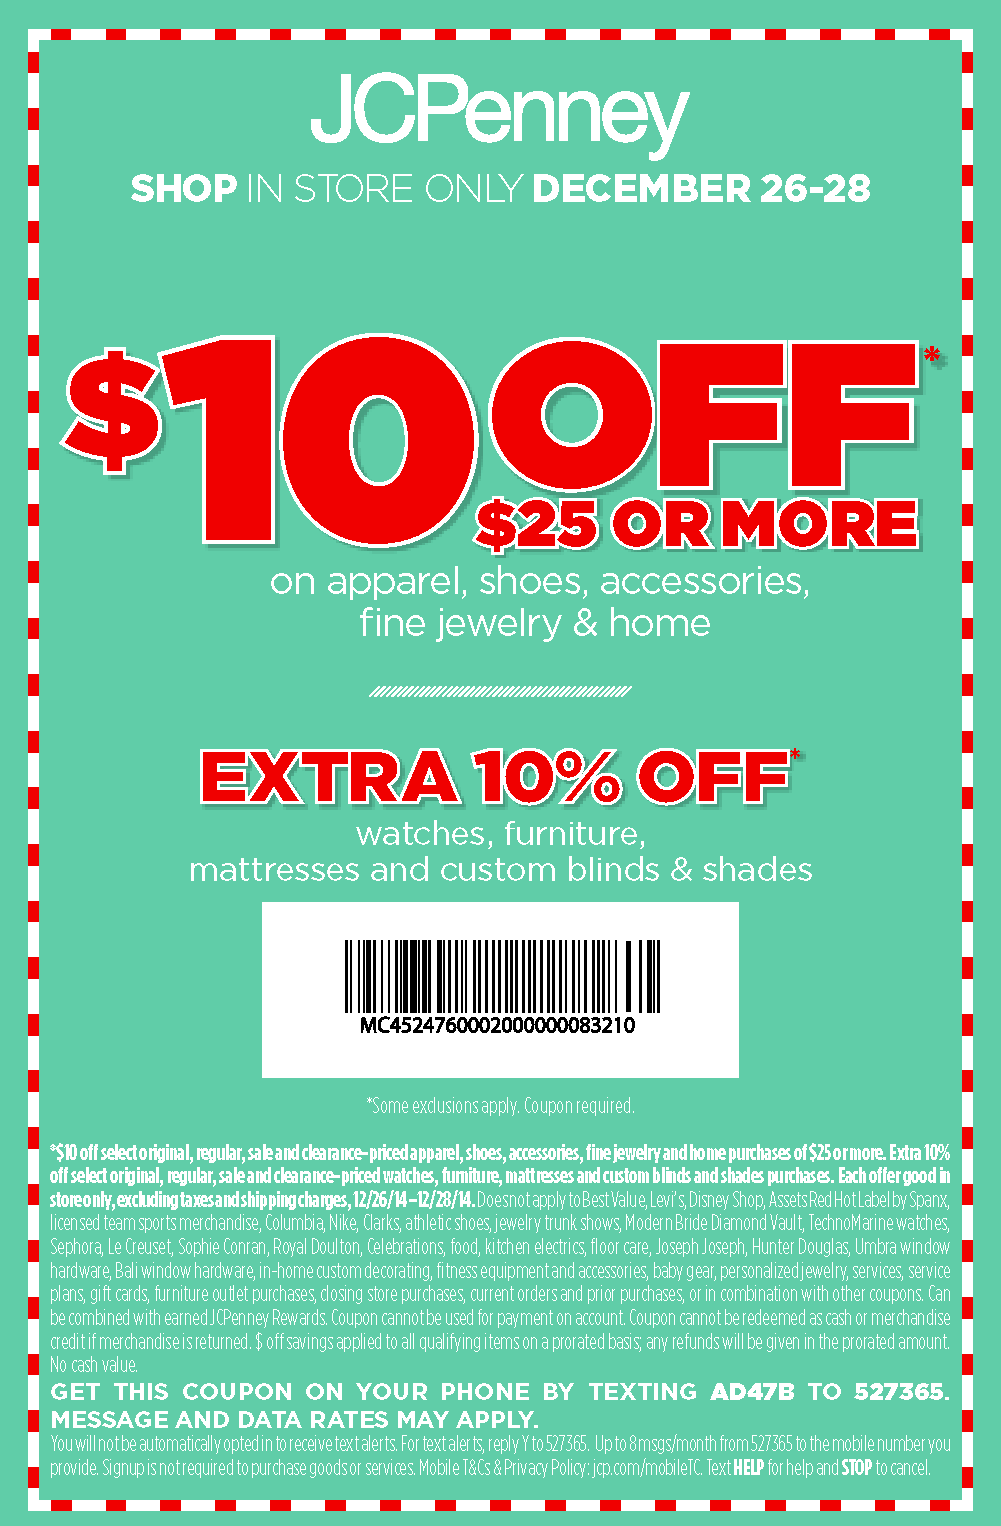 Jcpenney coupons $10 off